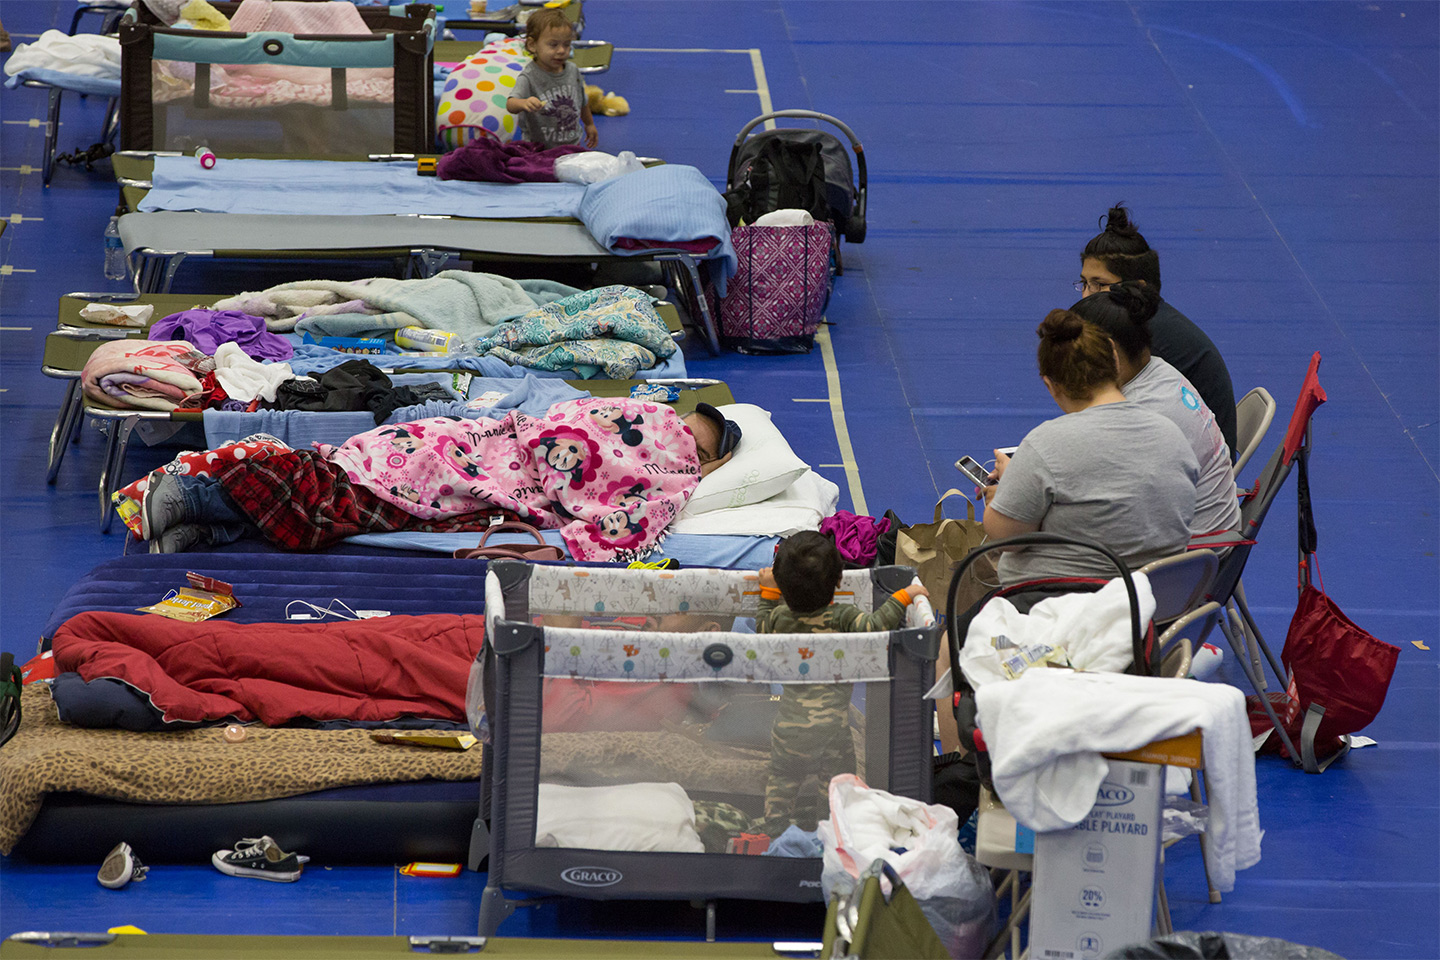 Evacuees from Hurricane Harvey take shelter at the Delco Center in east Austin, Texas on Sunday, August 27, 2017. (Suzanne Cordeiro/AFP/Getty Images) ...